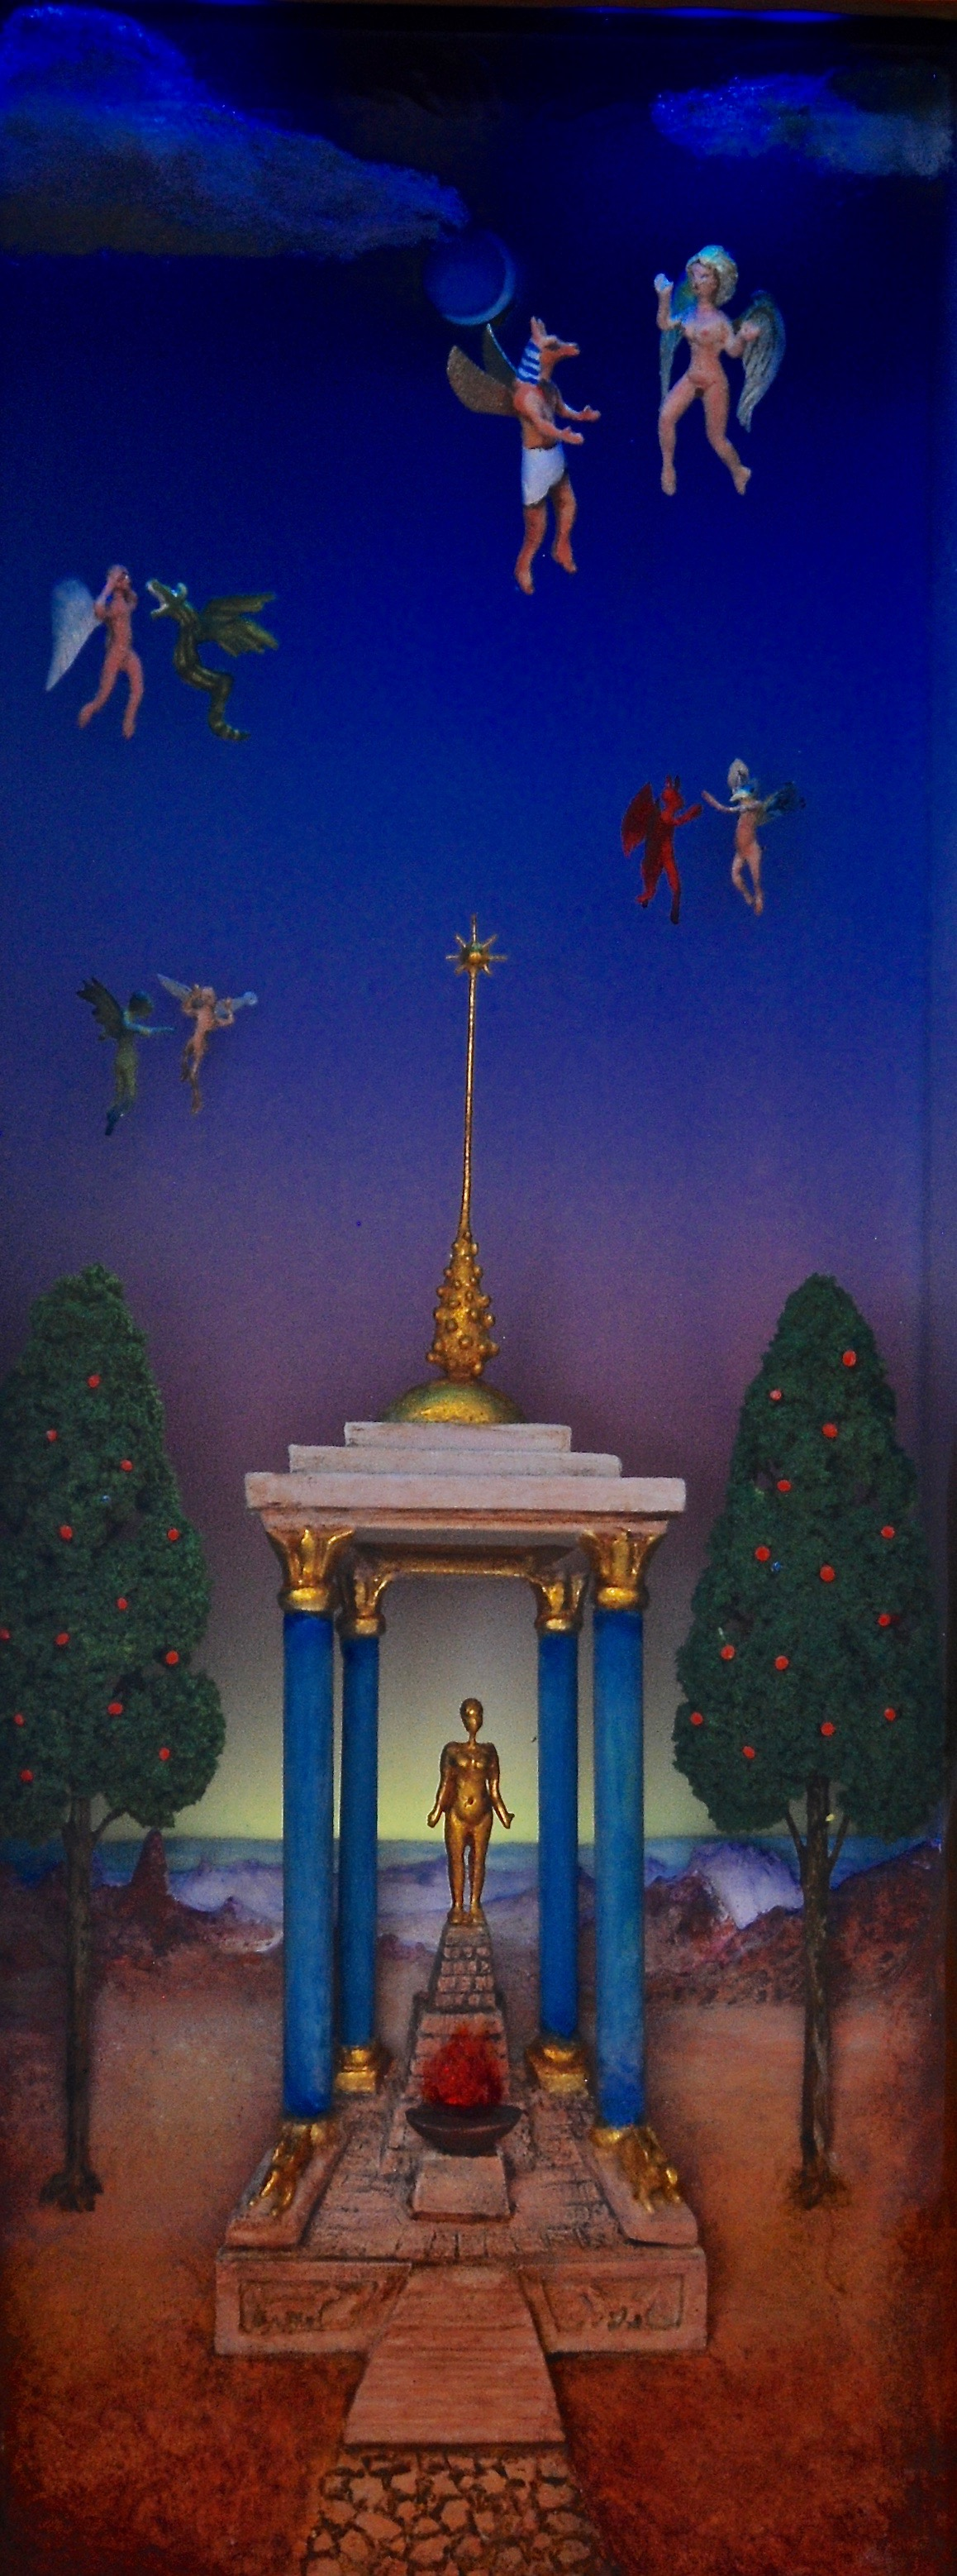 """Thomas Coffin - Conversations at the Temple of Baal, 25""""h x 15""""w x 5 3/4""""d, mixed media 3-d diorama encased in acrylic resin, wood frame, copper leaf (embedded lighting detail)"""